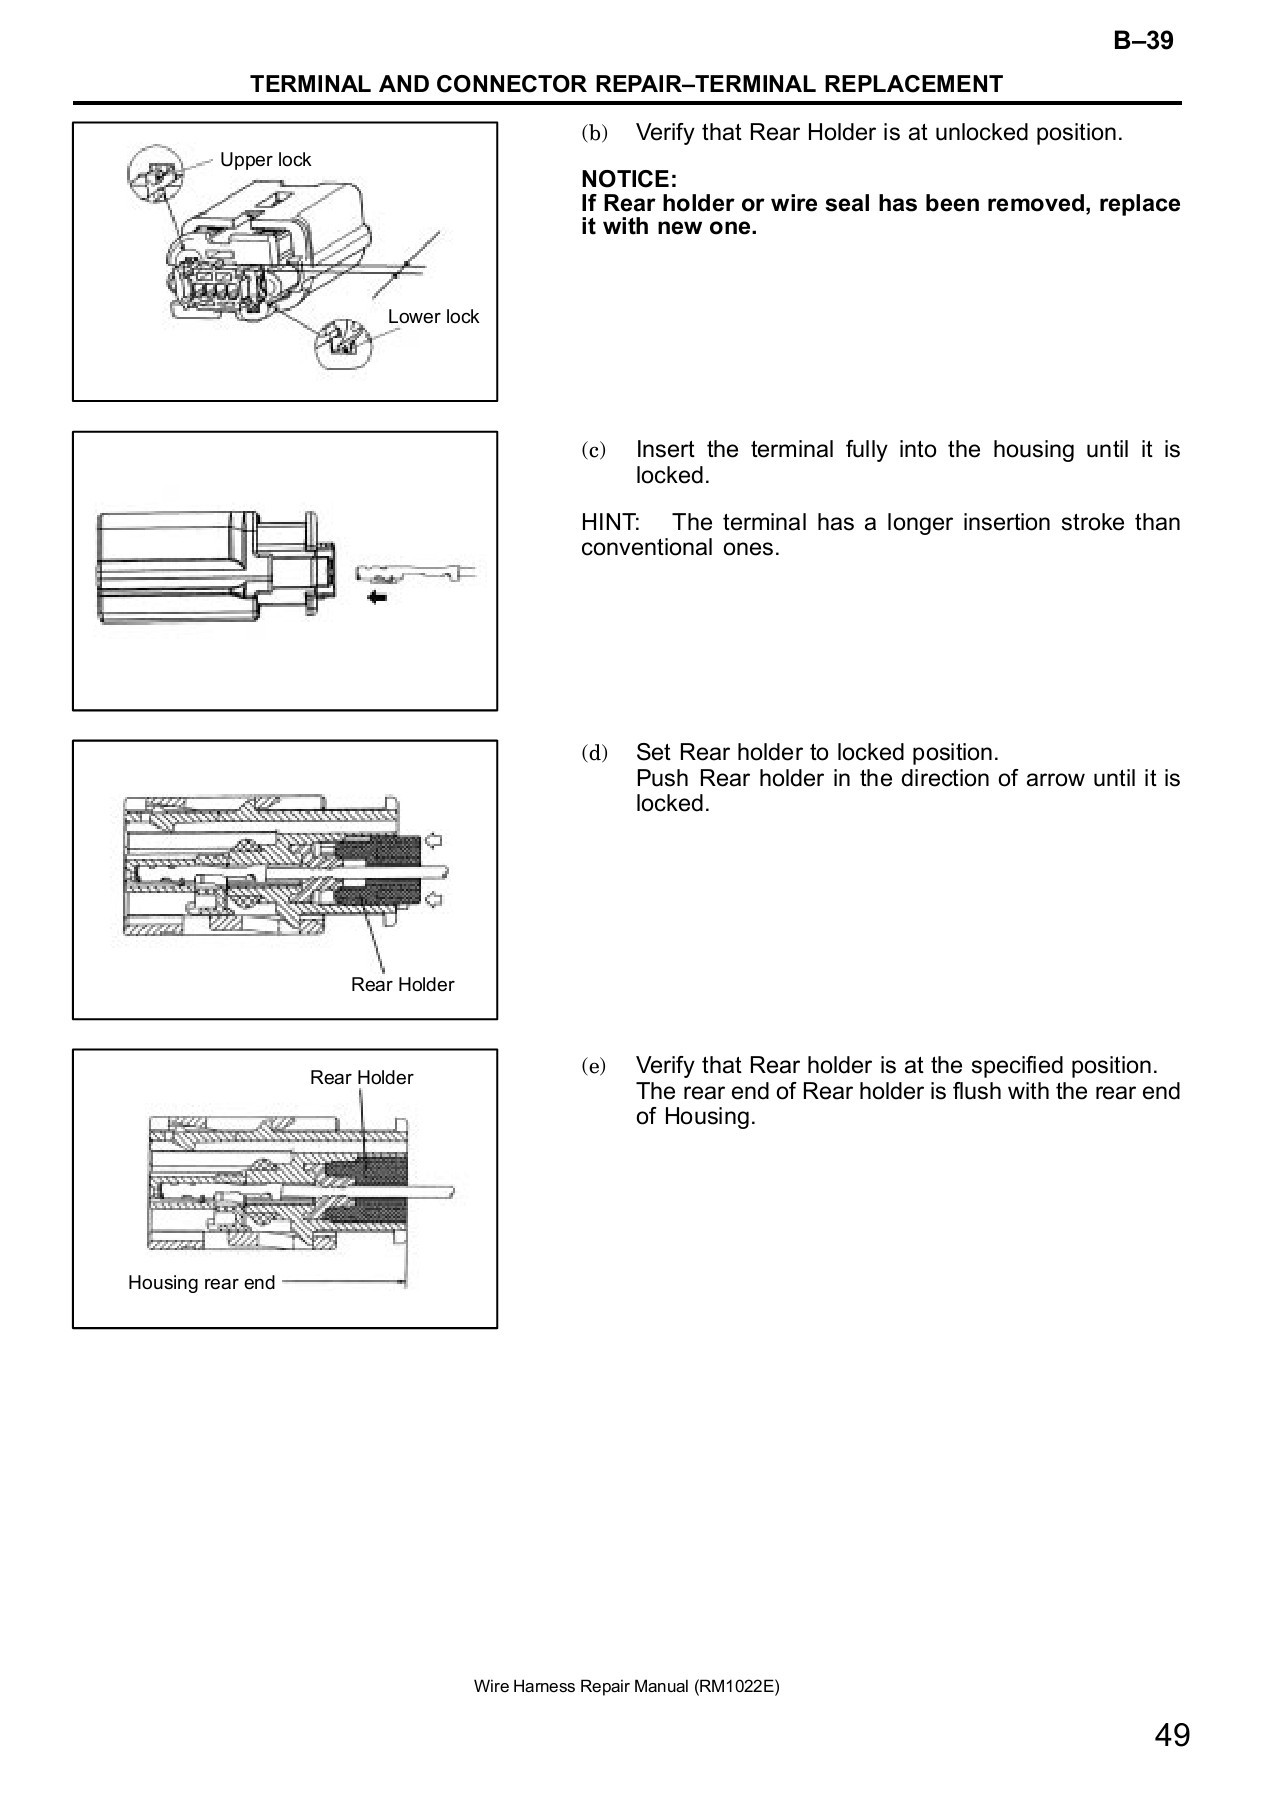 toyota wiring repair manual pdfdrive com pages 51 100 text version fliphtml5 [ 1272 x 1800 Pixel ]